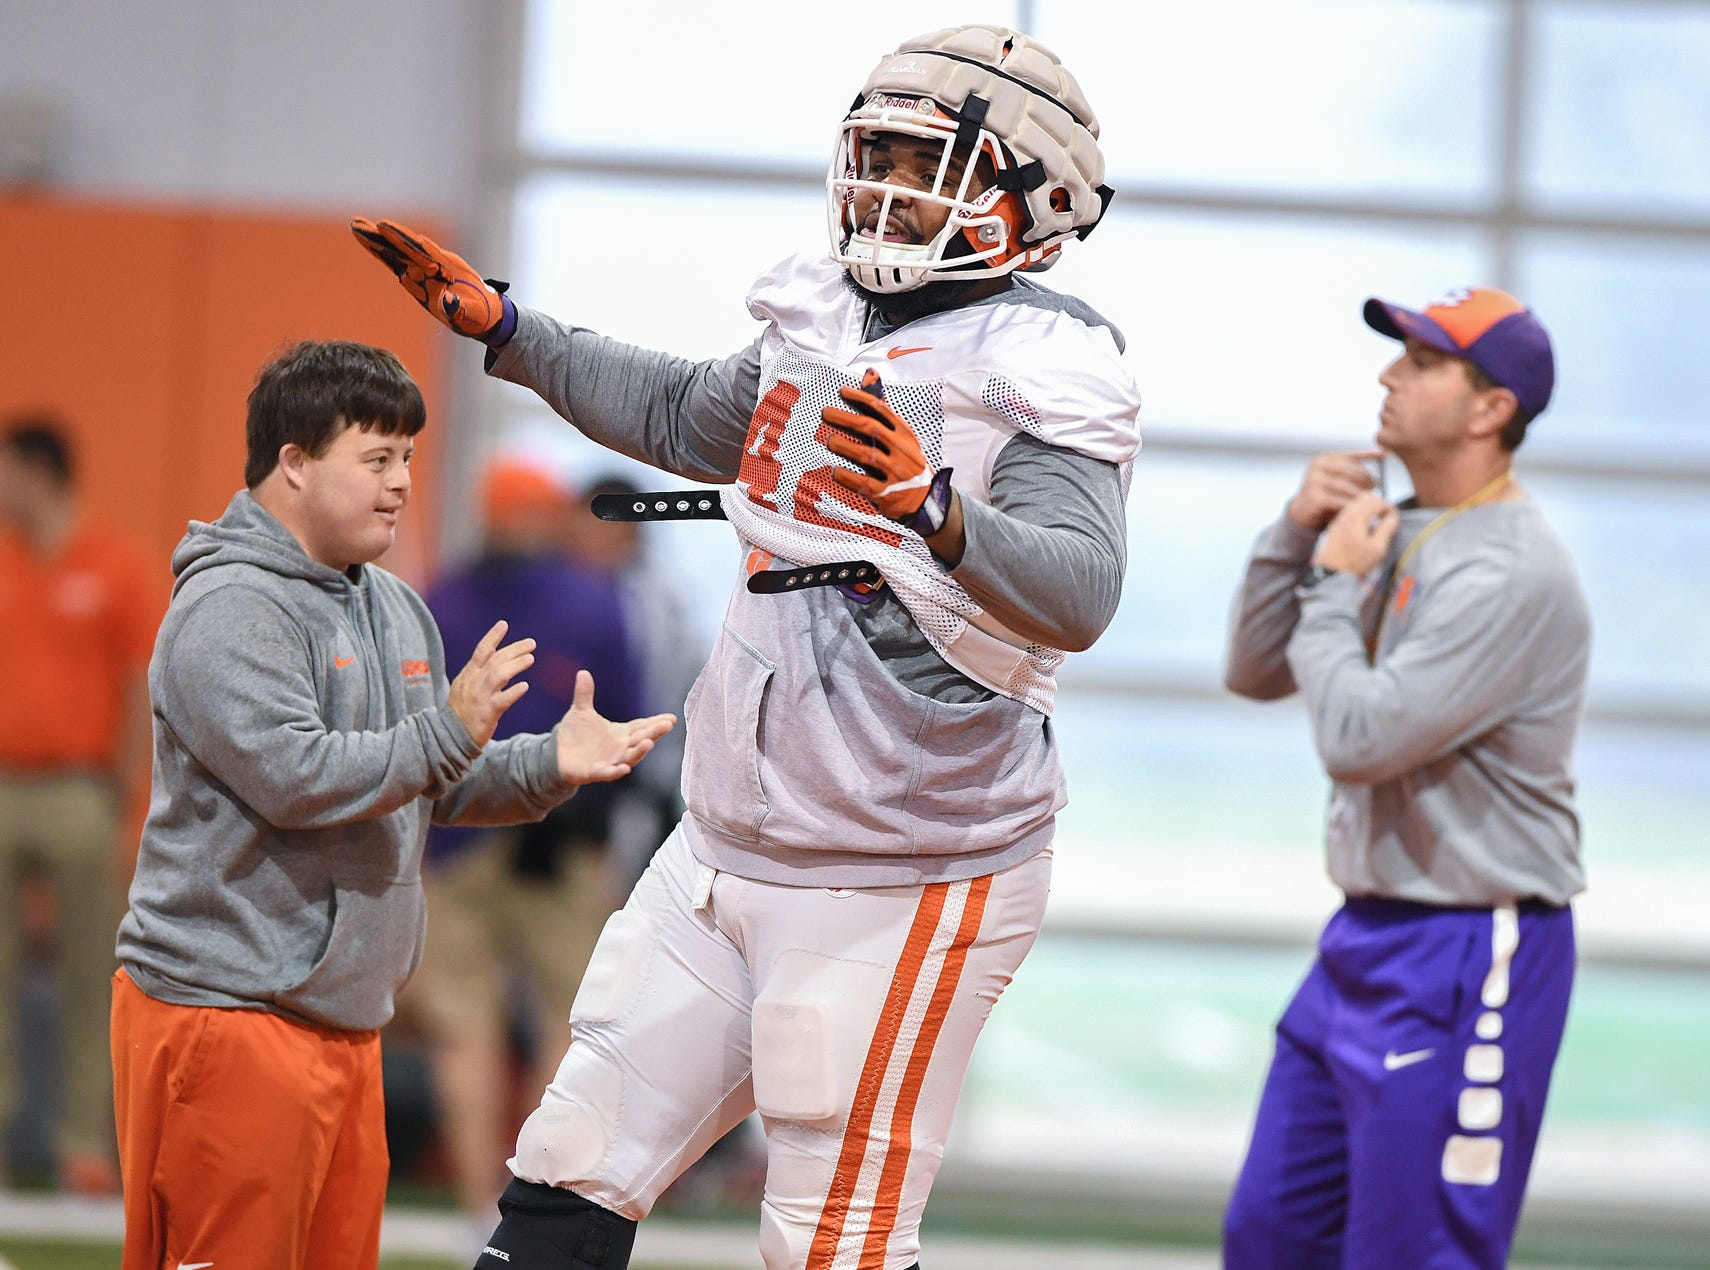 Clemson defensive lineman Christian Wilkins (42) during the Tigers Cotton Bowl practice on Friday, December 14, 2018.